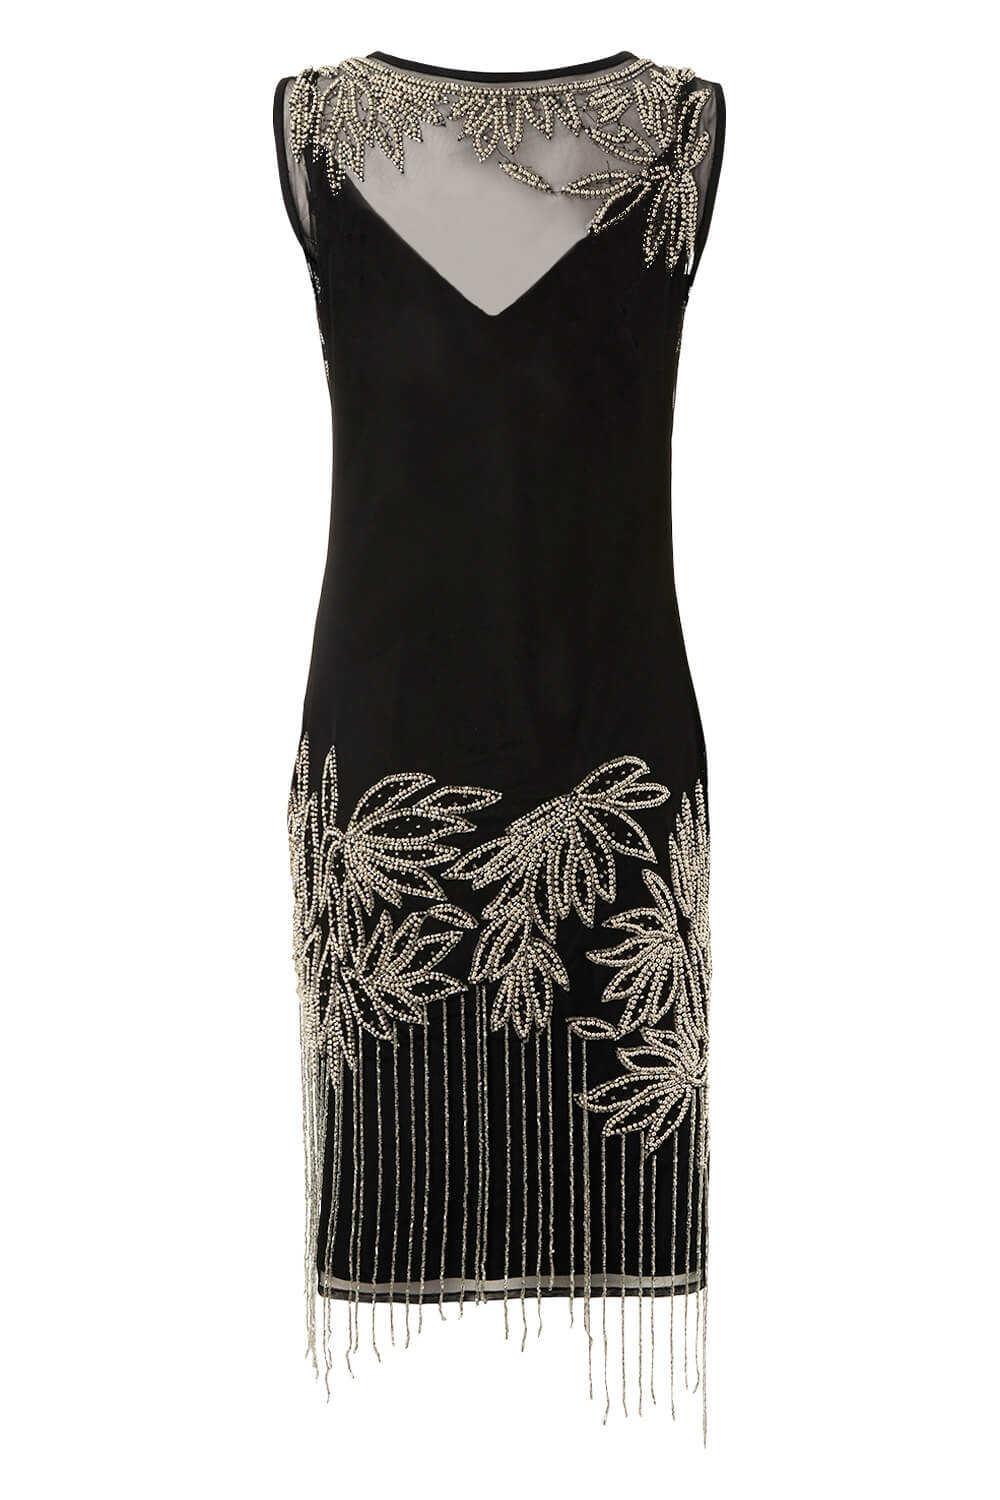 Roman Originals Ladies Embellished Flapper Dress Black 10-20